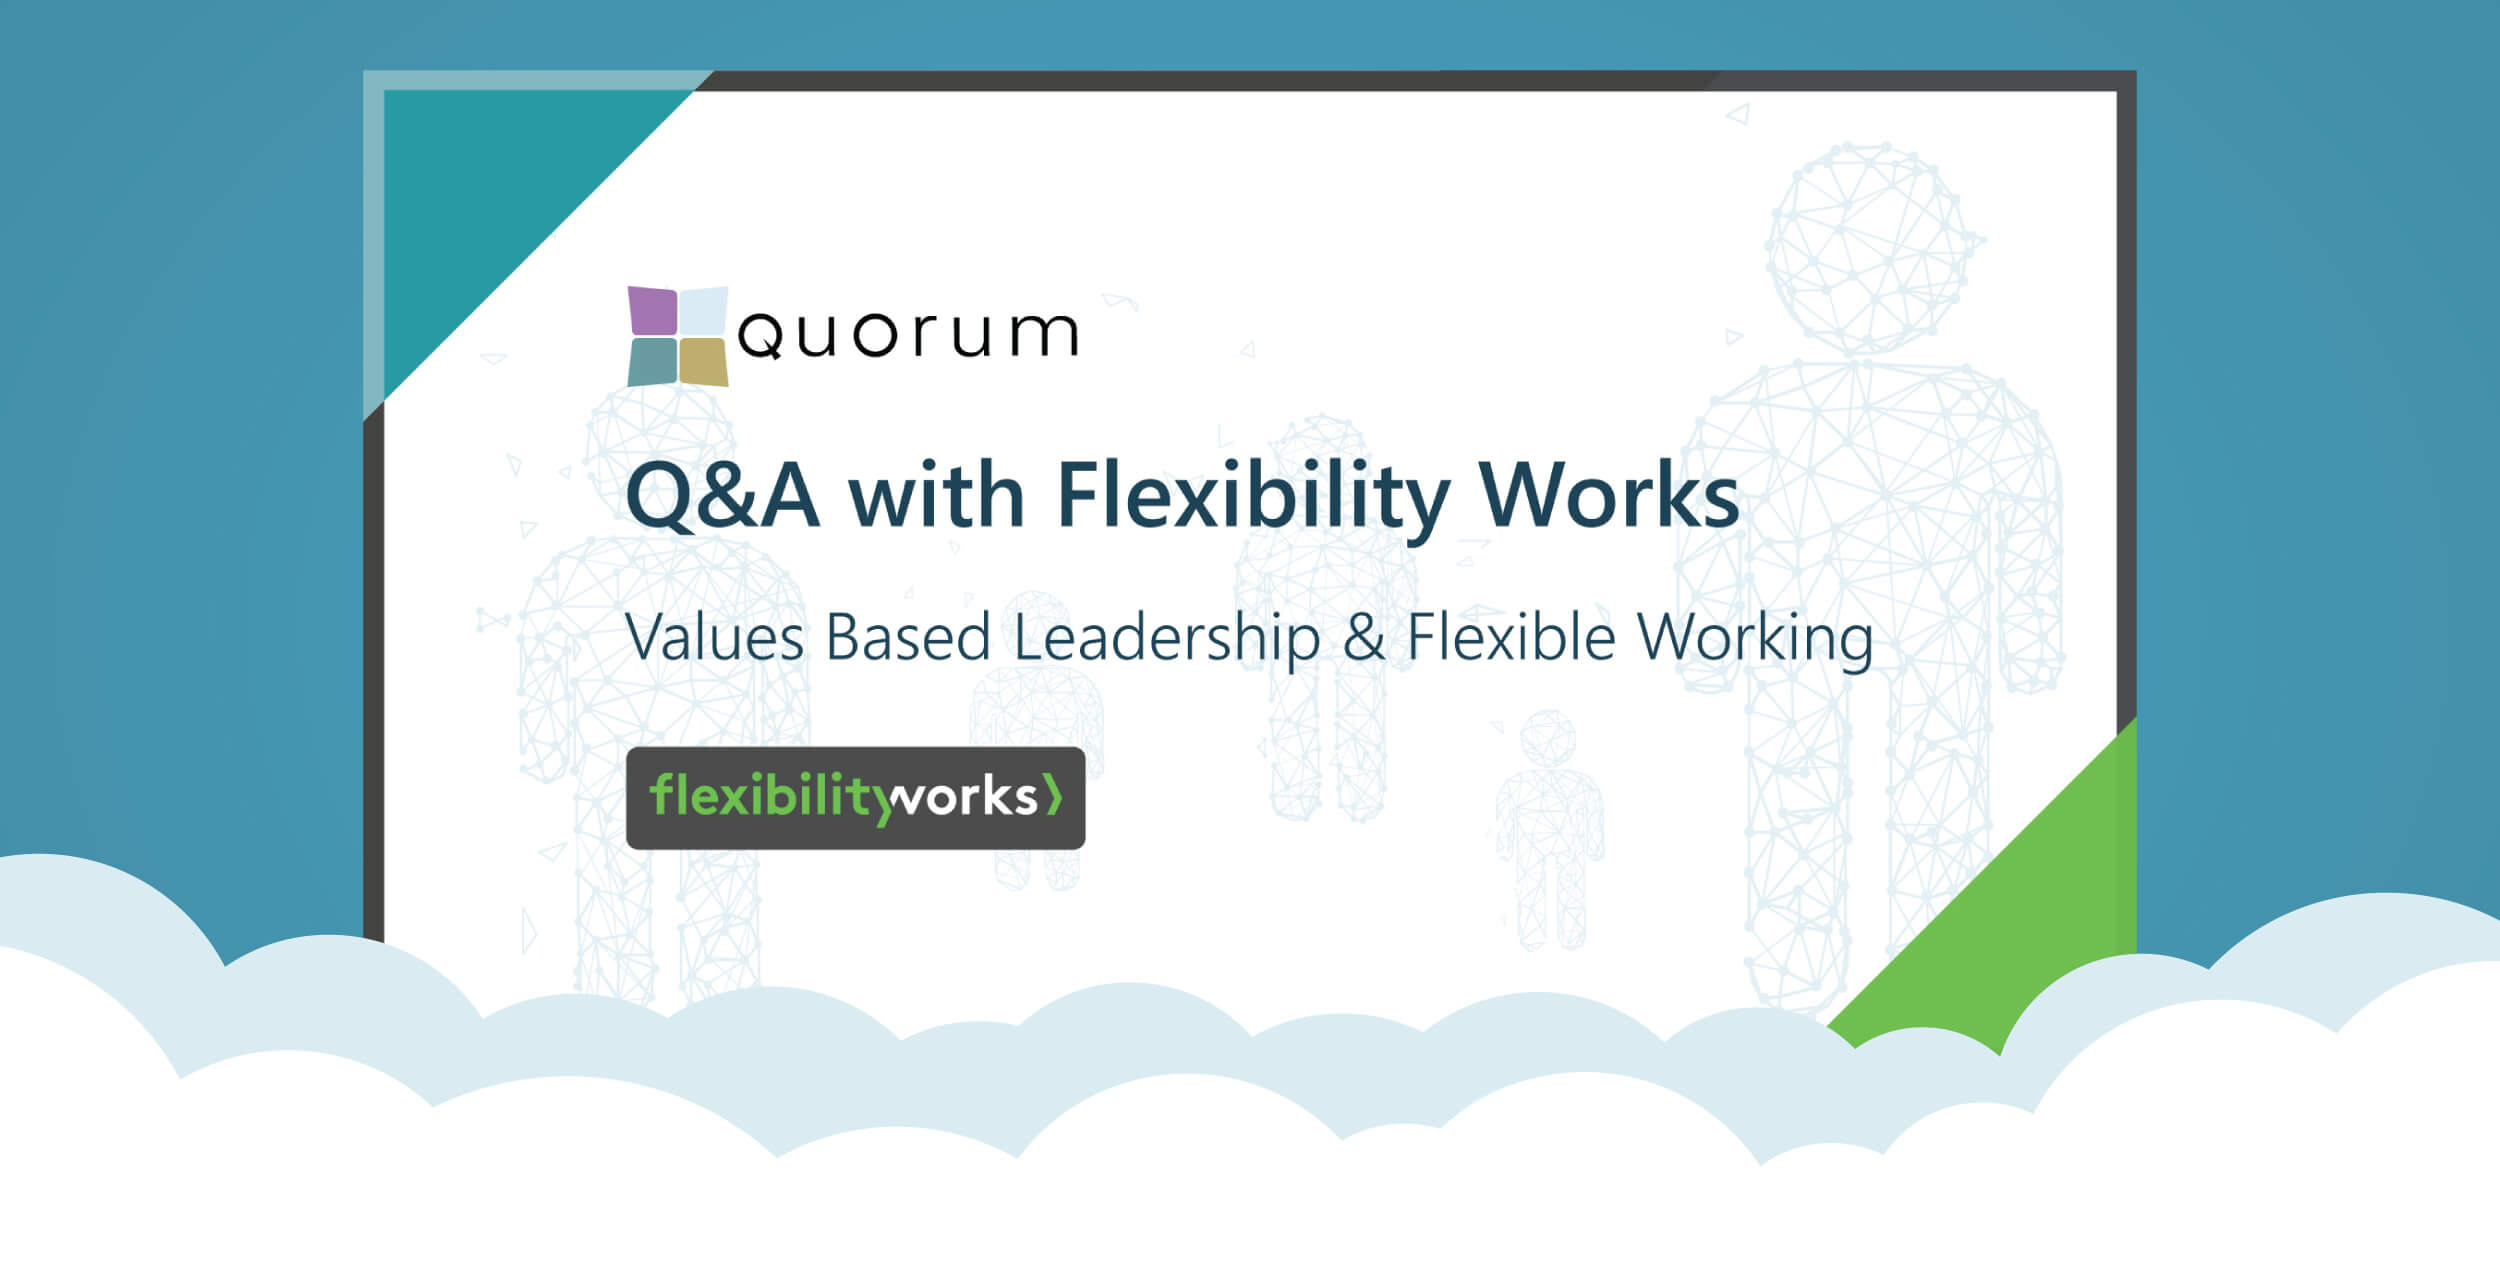 Values Based Leadership & Flexible Working Q&A